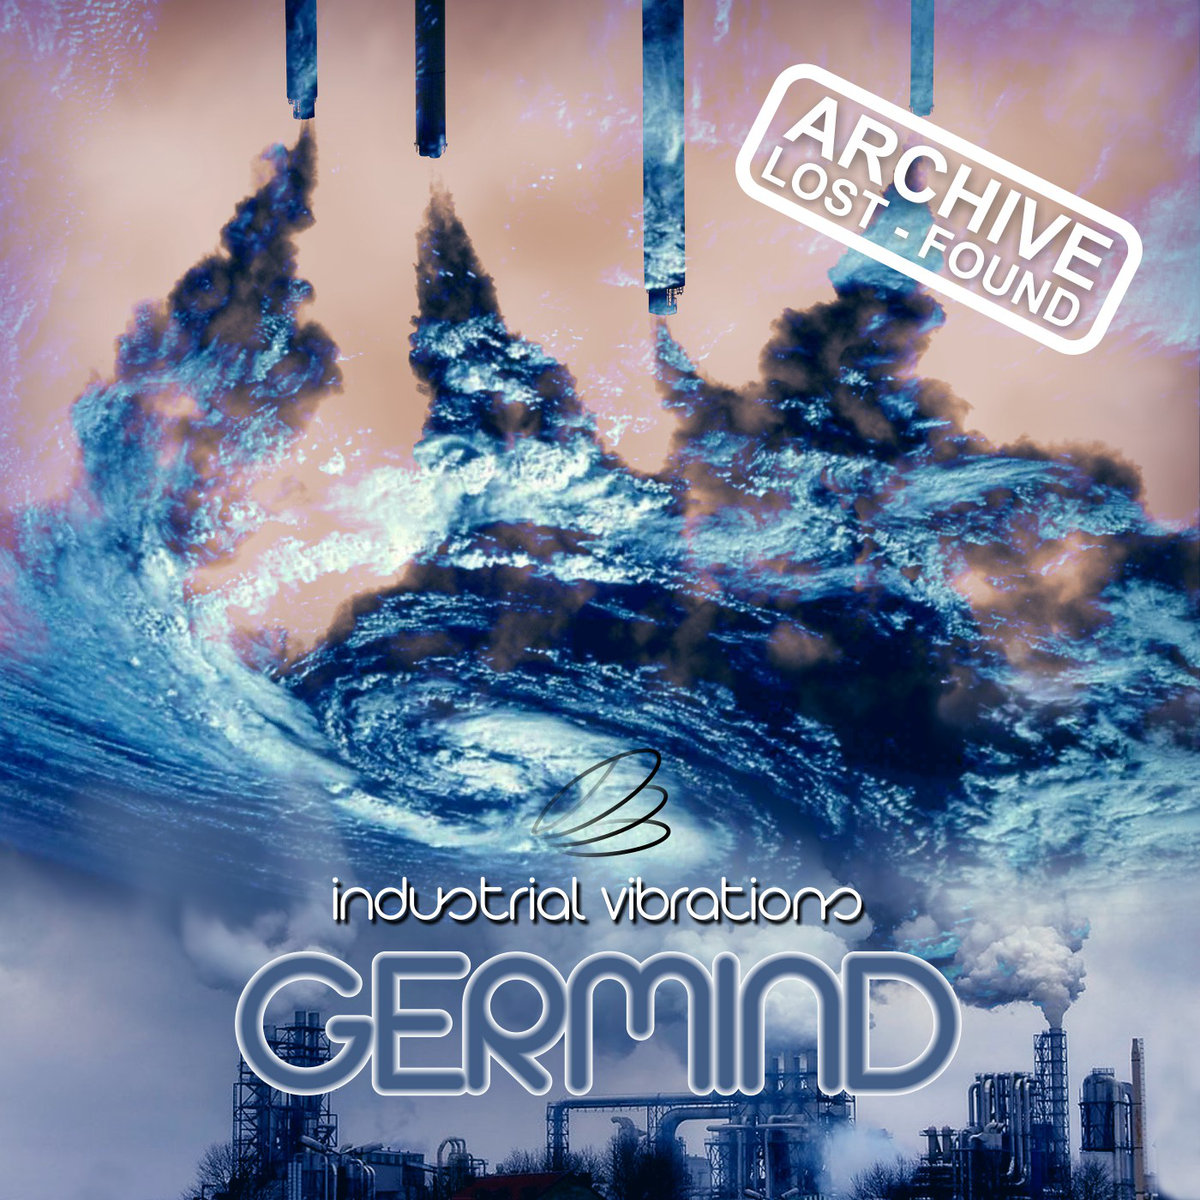 Germind - First Flight @ 'Industrial Vibrations' album (ambient, chillout)